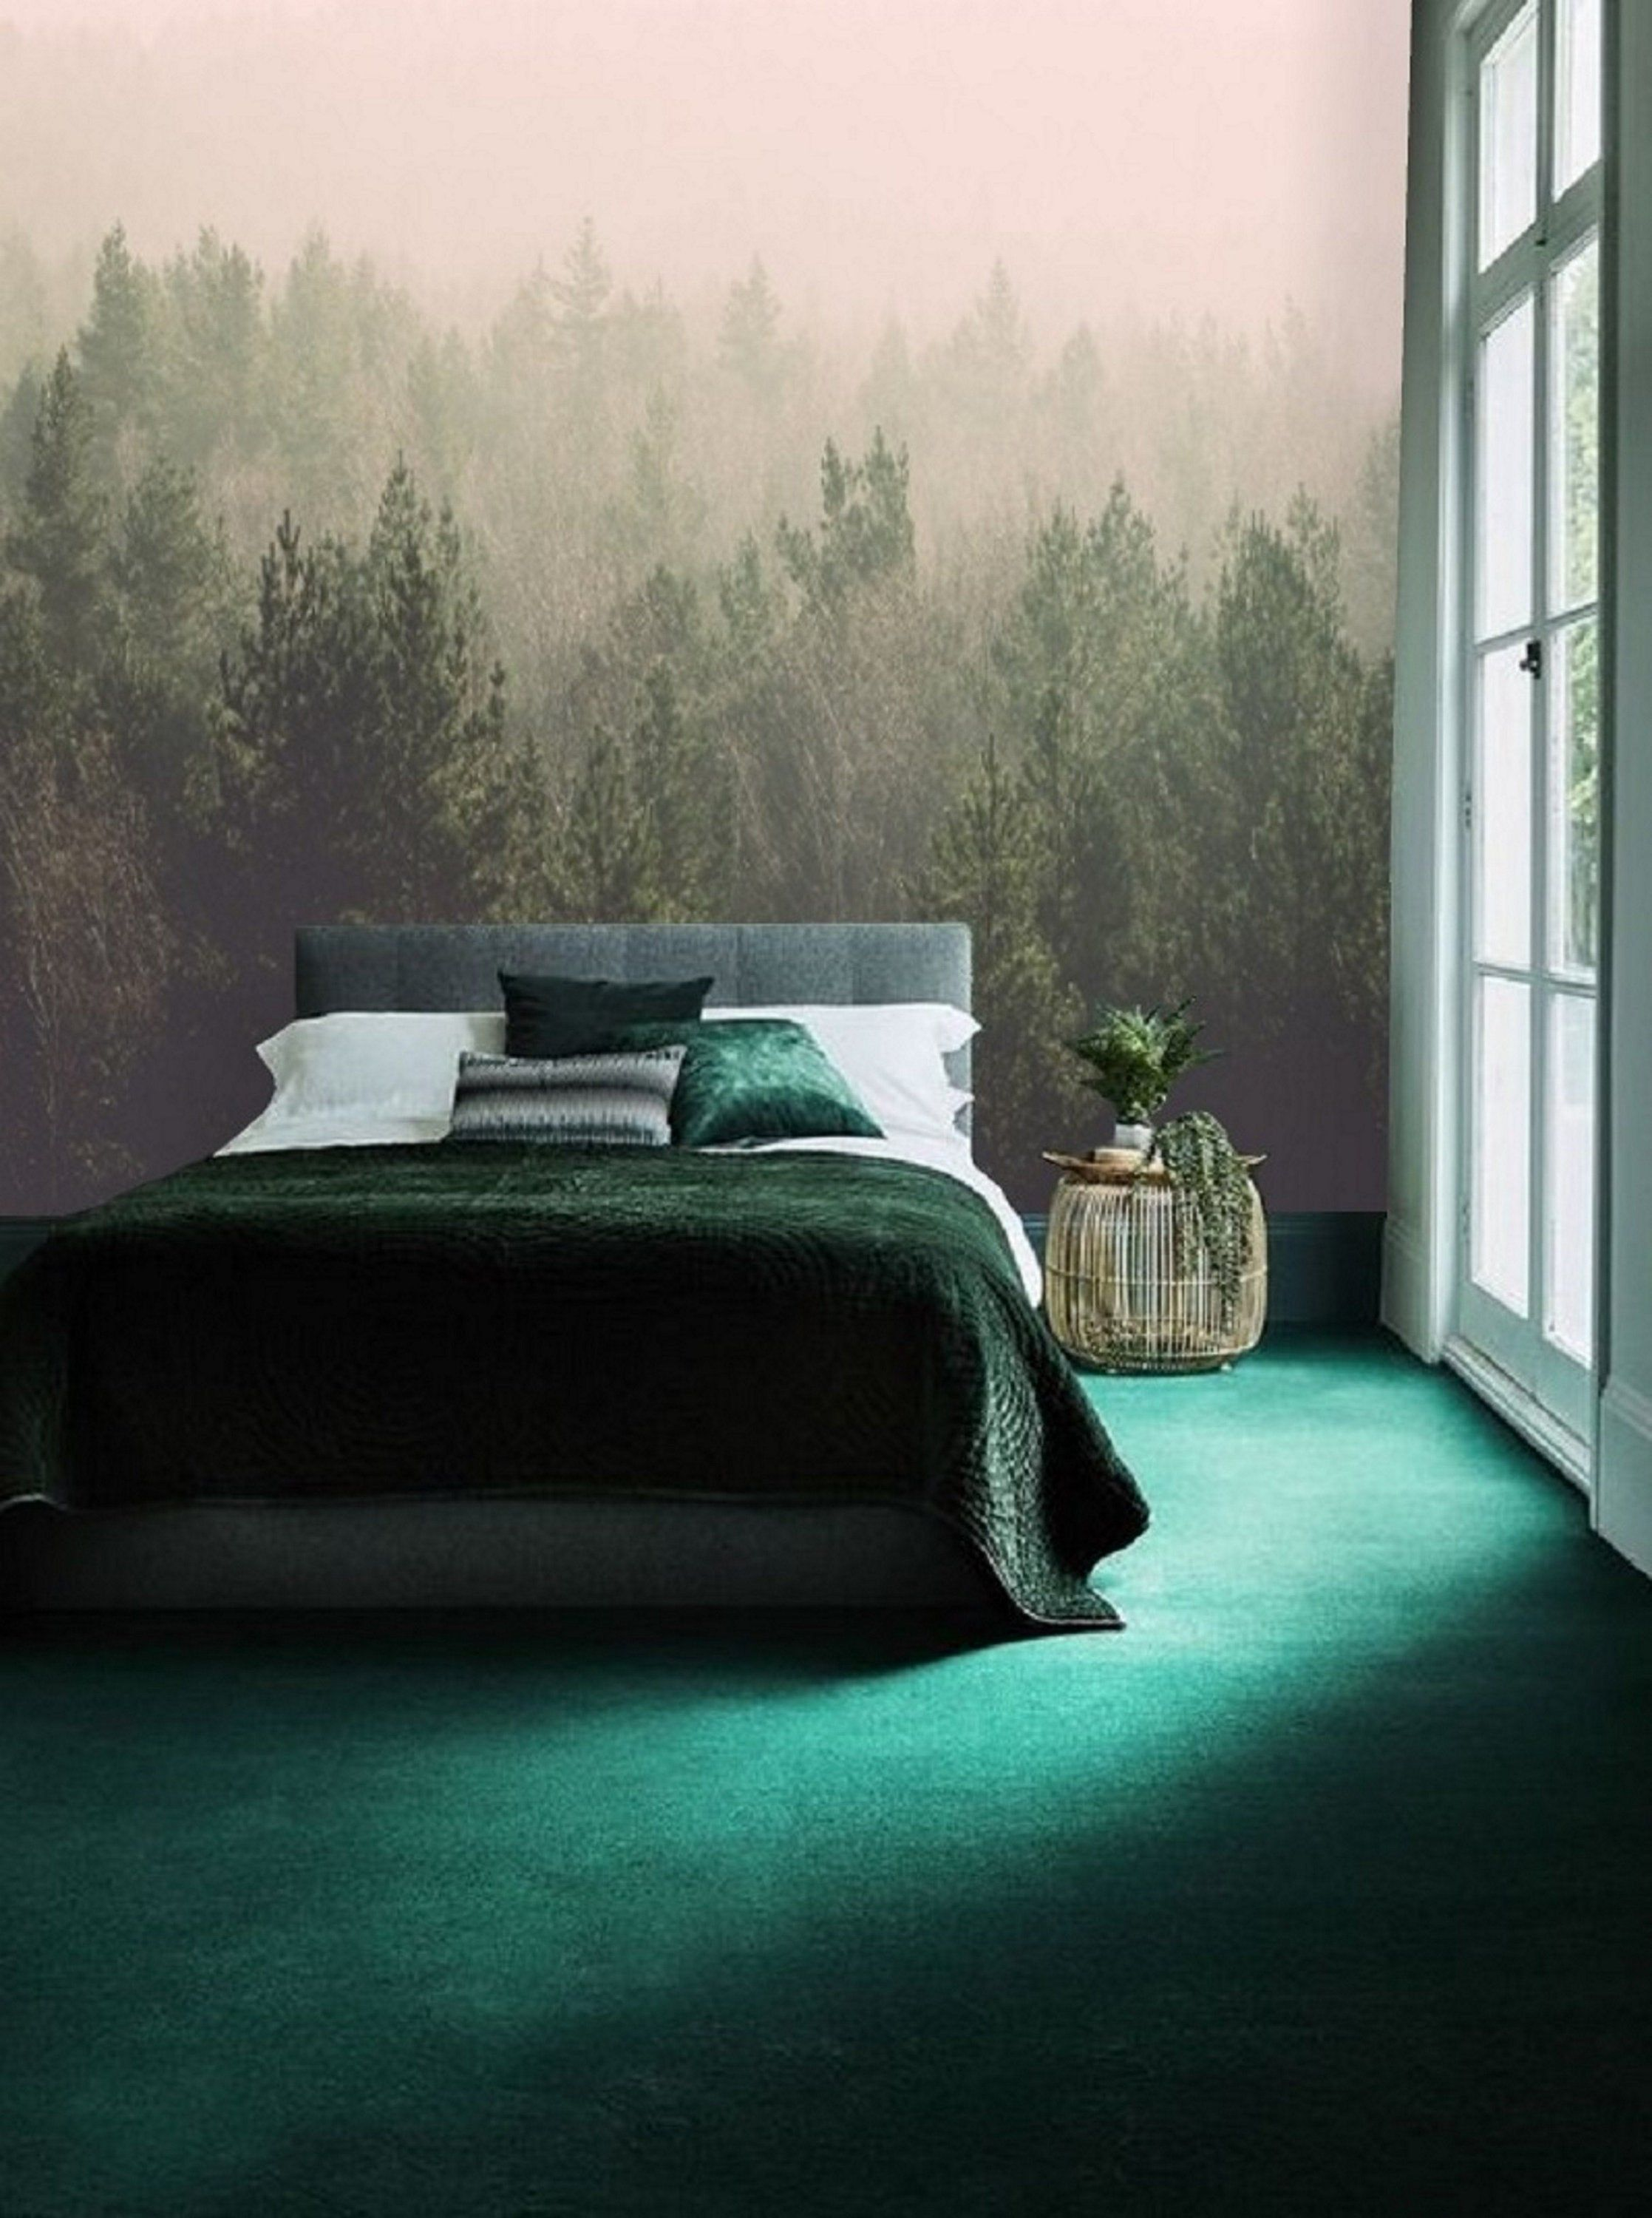 Misty Forest Self Adhesive Wallpaper Peel & Stick, Mural